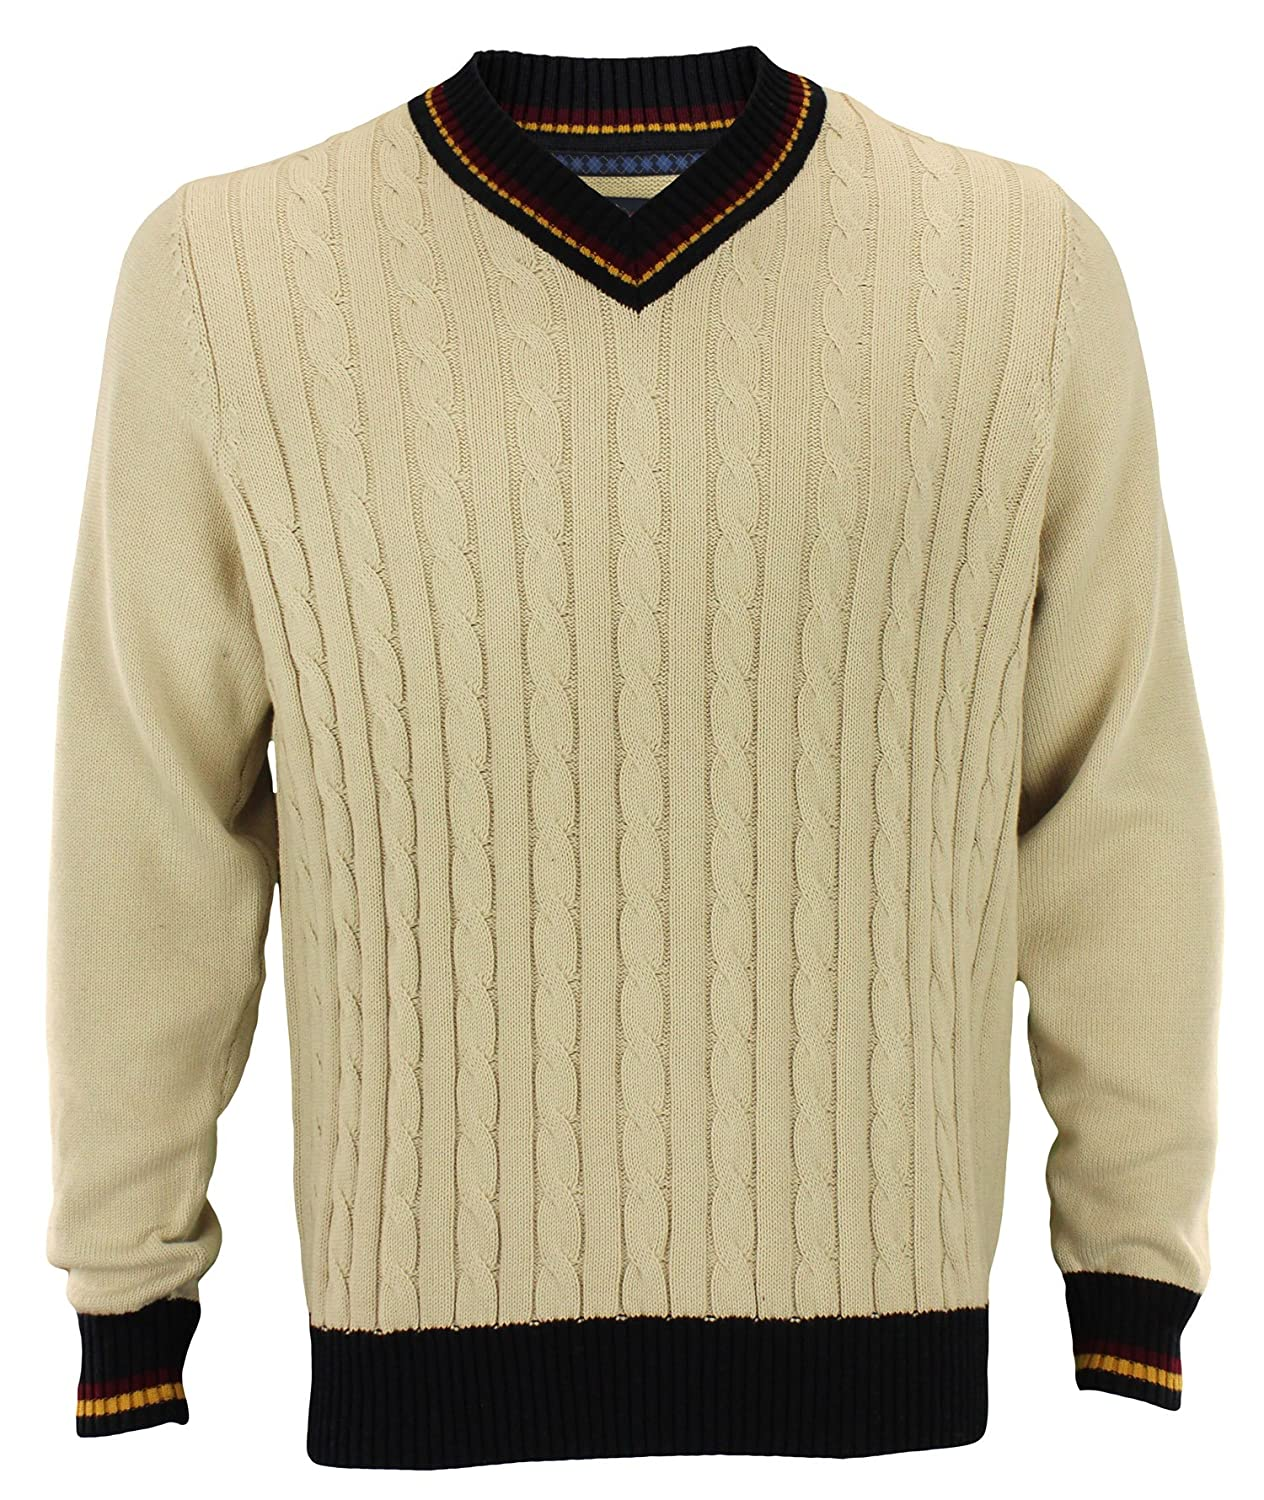 Men's Vintage Style Sweaters – 1920s to 1960s Varsity Sweater Color Options $24.95 AT vintagedancer.com